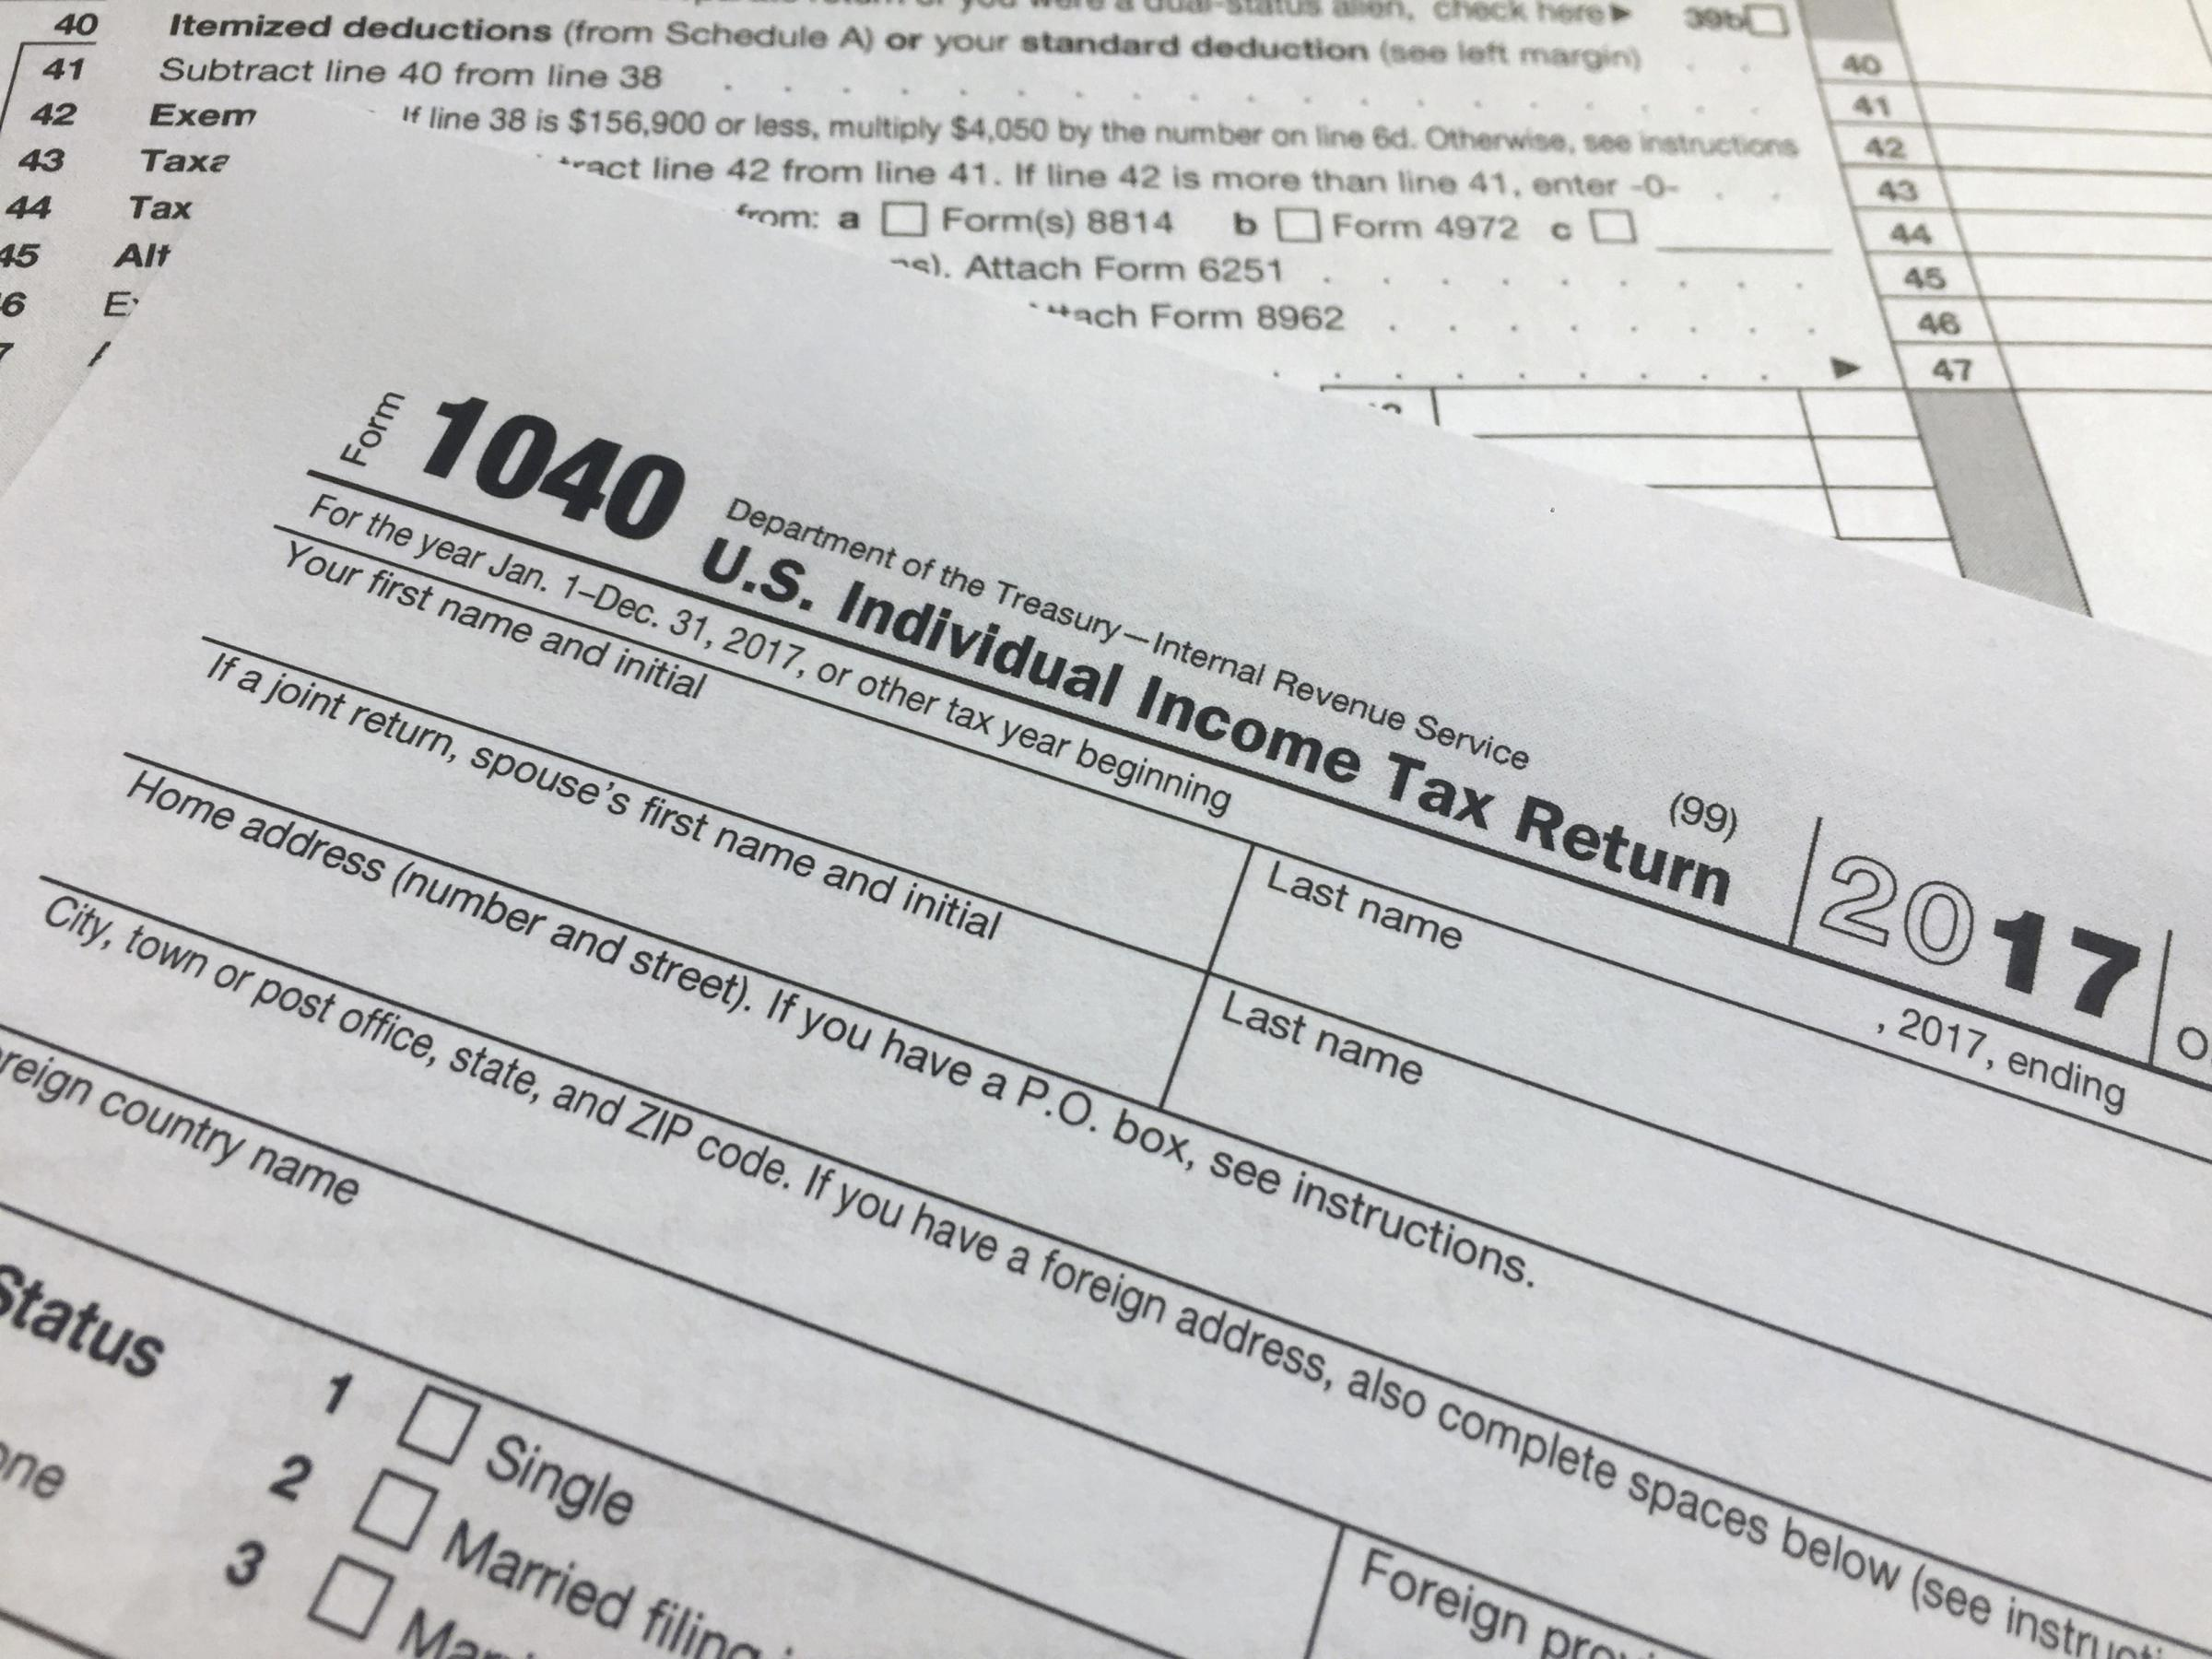 Idaho Tax Commission Warns Of Identity Theft Scams | Boise State ...